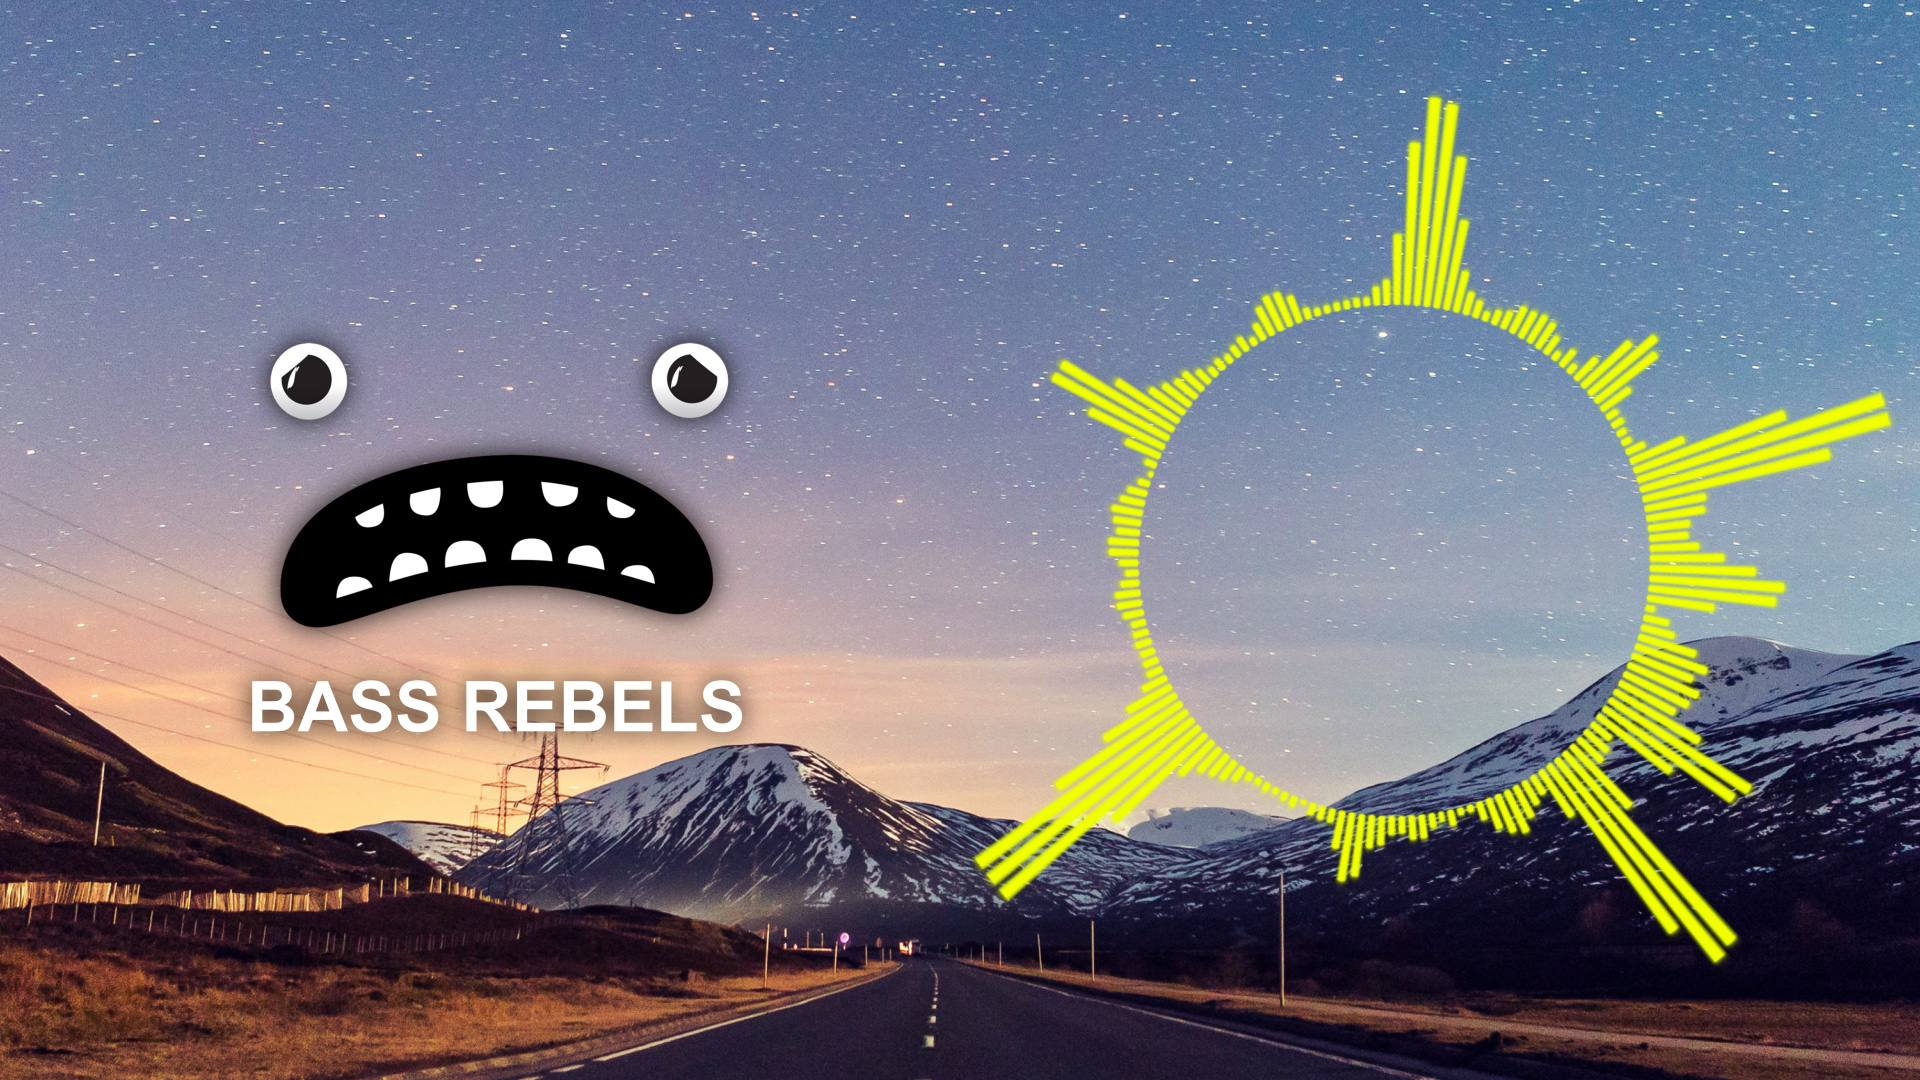 Drum And Bass Music Copyright Free Archives Bass Rebels